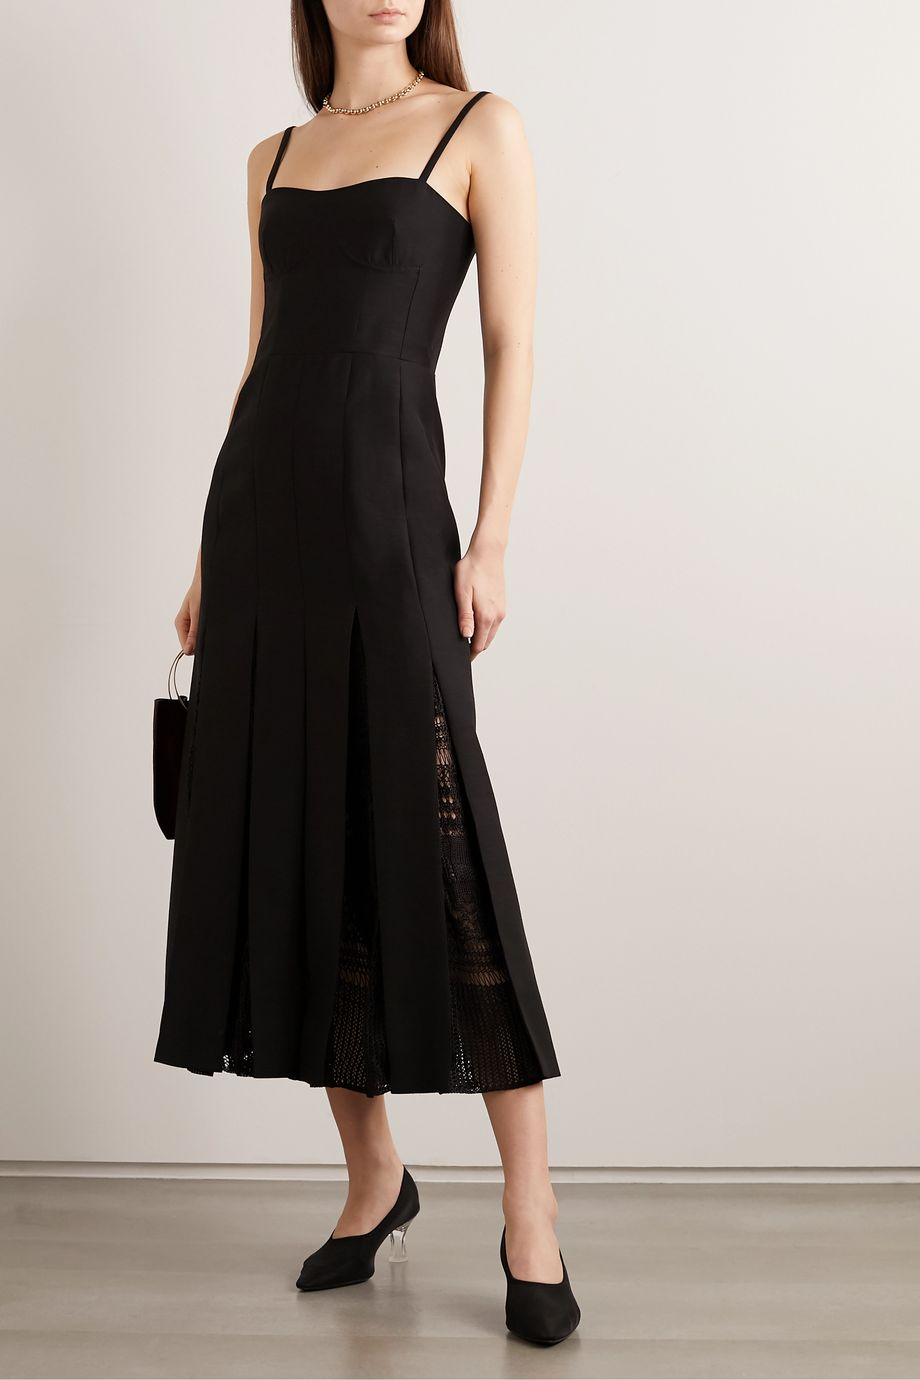 Gabriela Hearst Godard macramé-trimmed wool and silk-blend midi dress